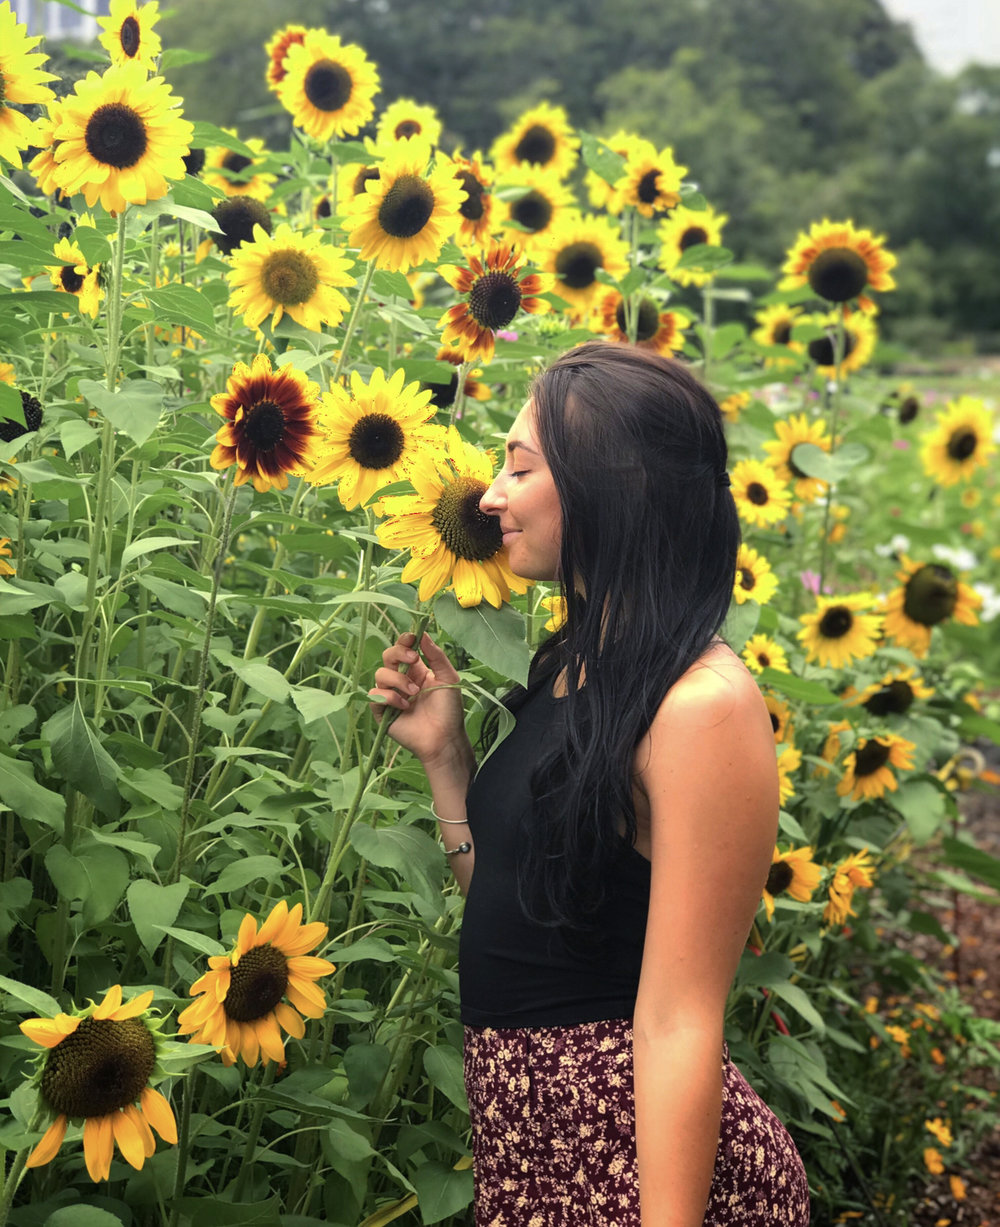 Smelling sunflowers.